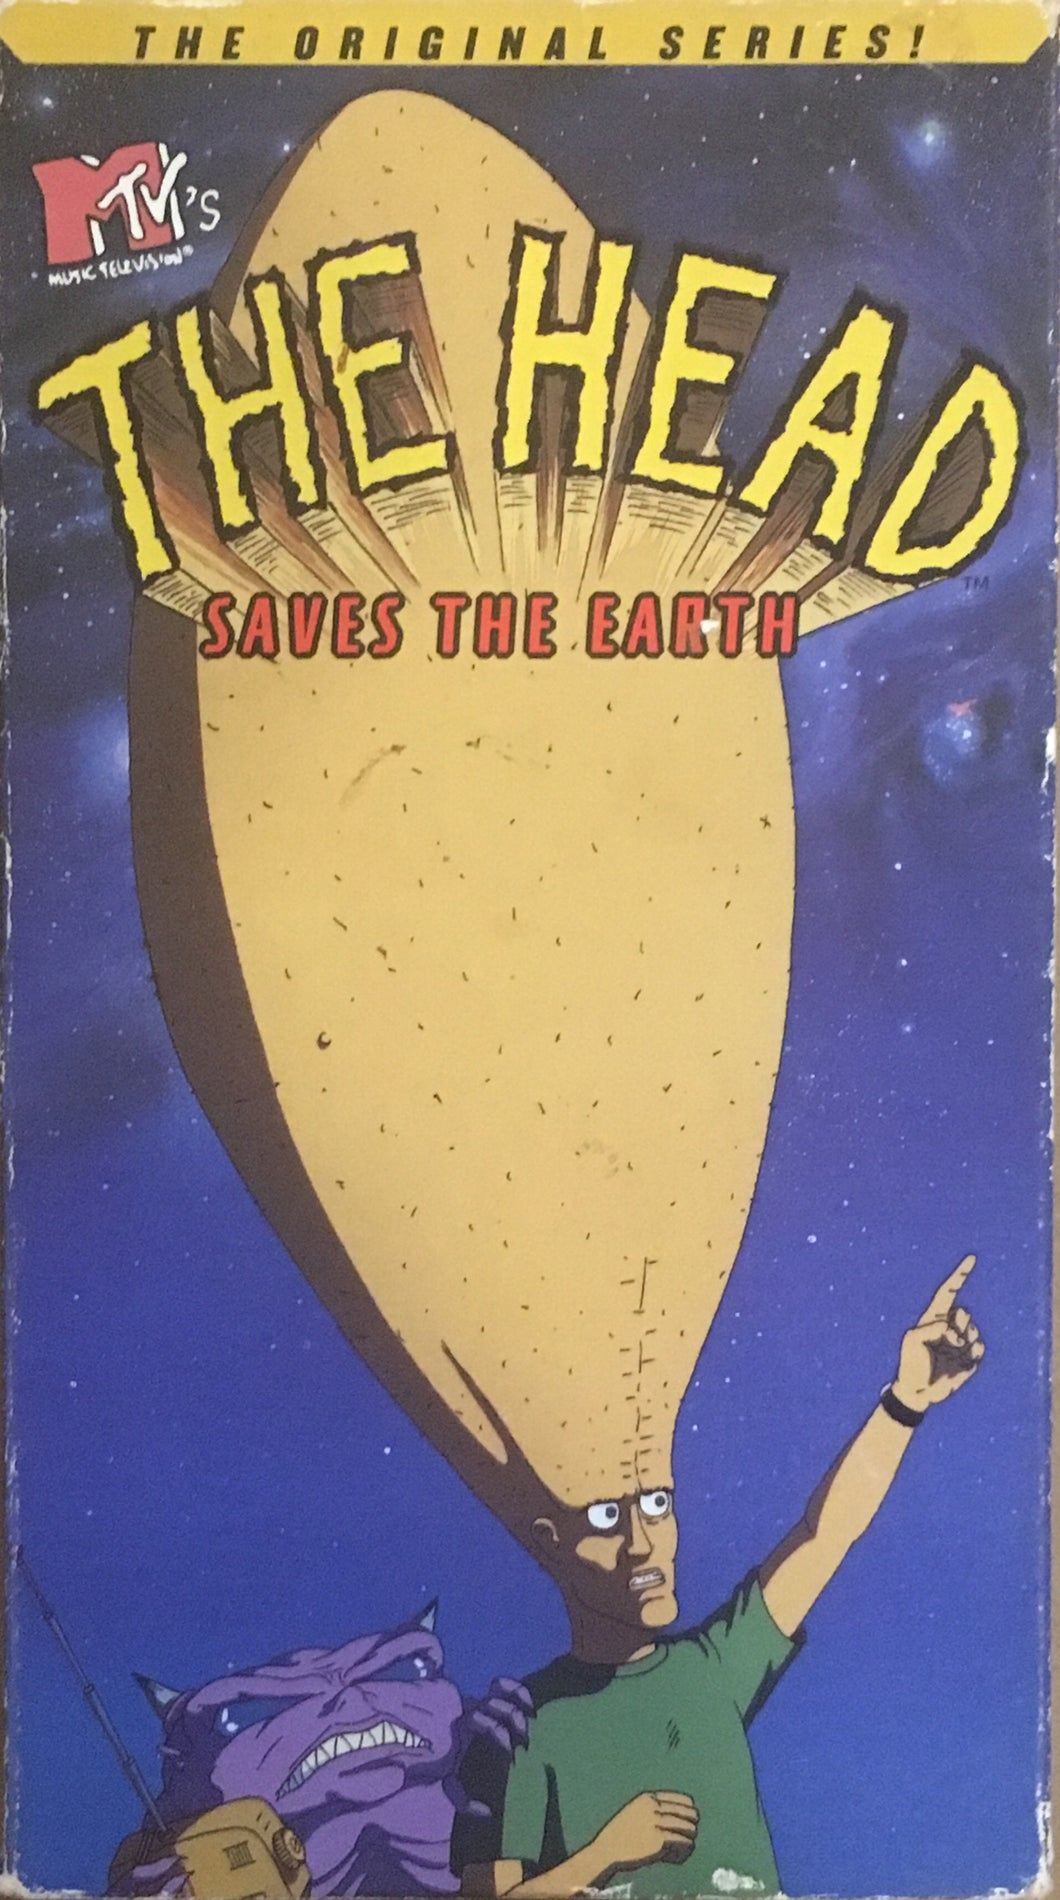 Head, The - Saves The Earth MTV VHS